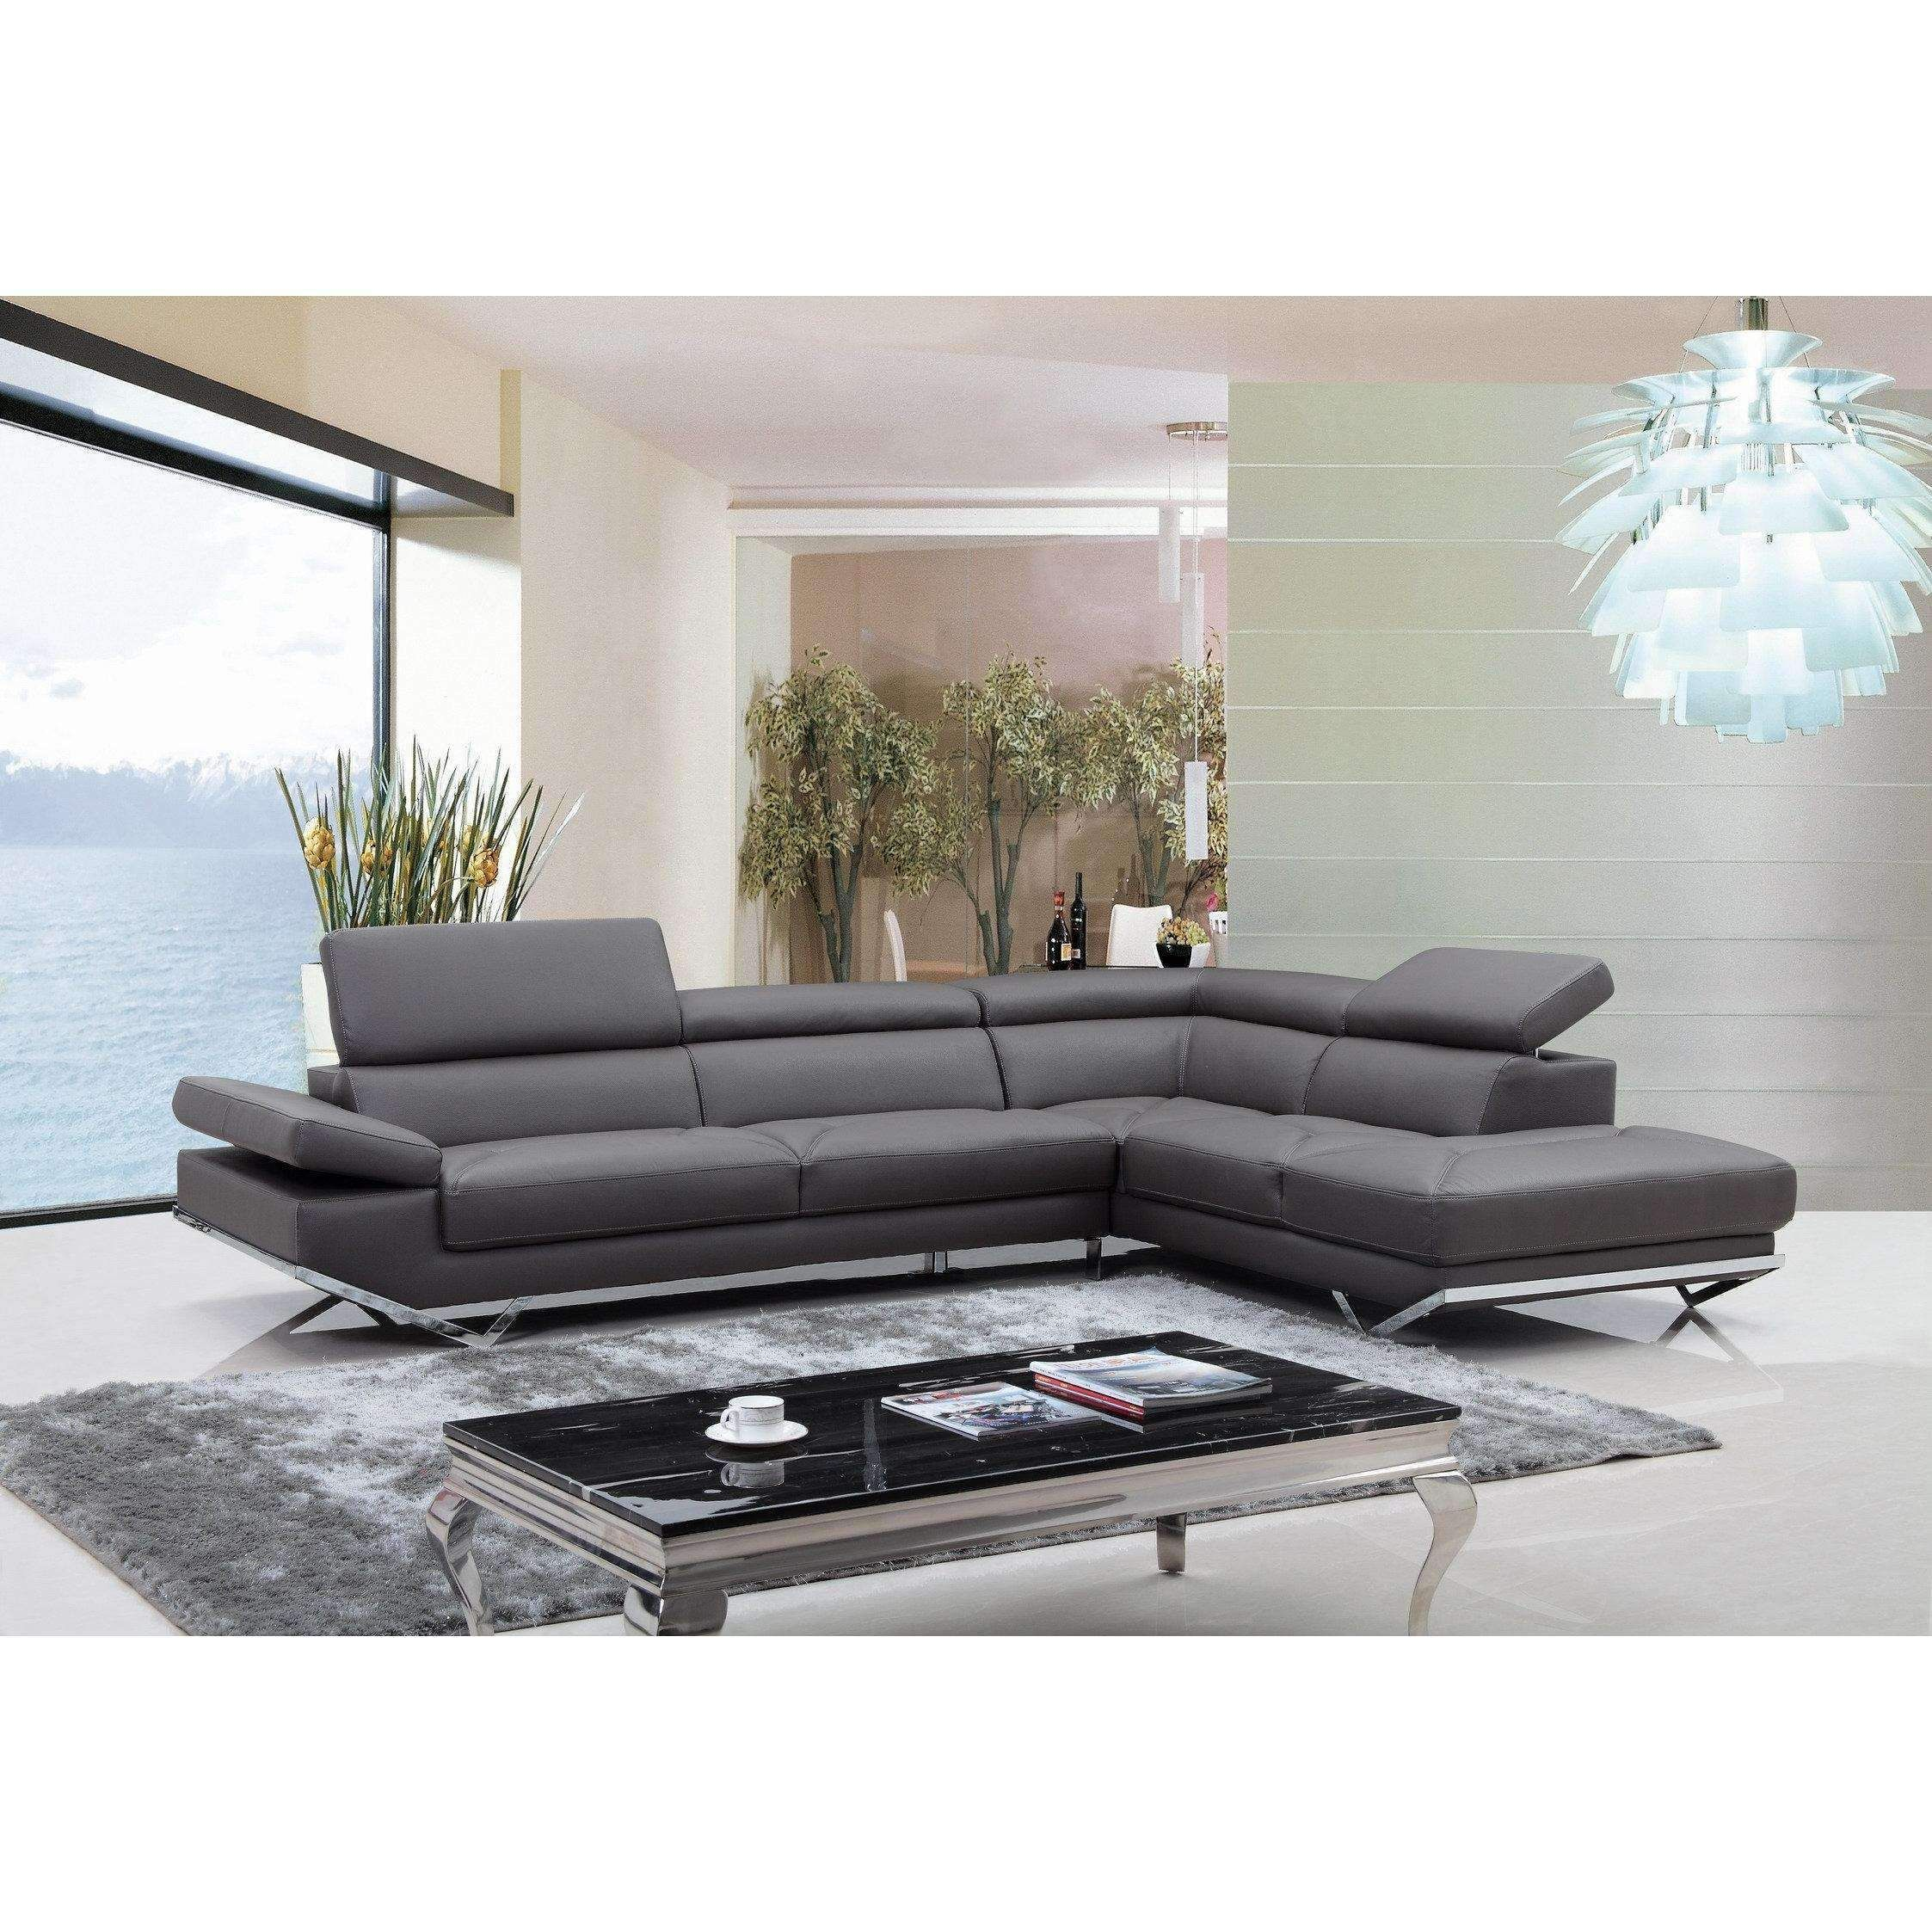 Casa Quebec Modern Dark Grey Eco-Leather Sectional Sofa